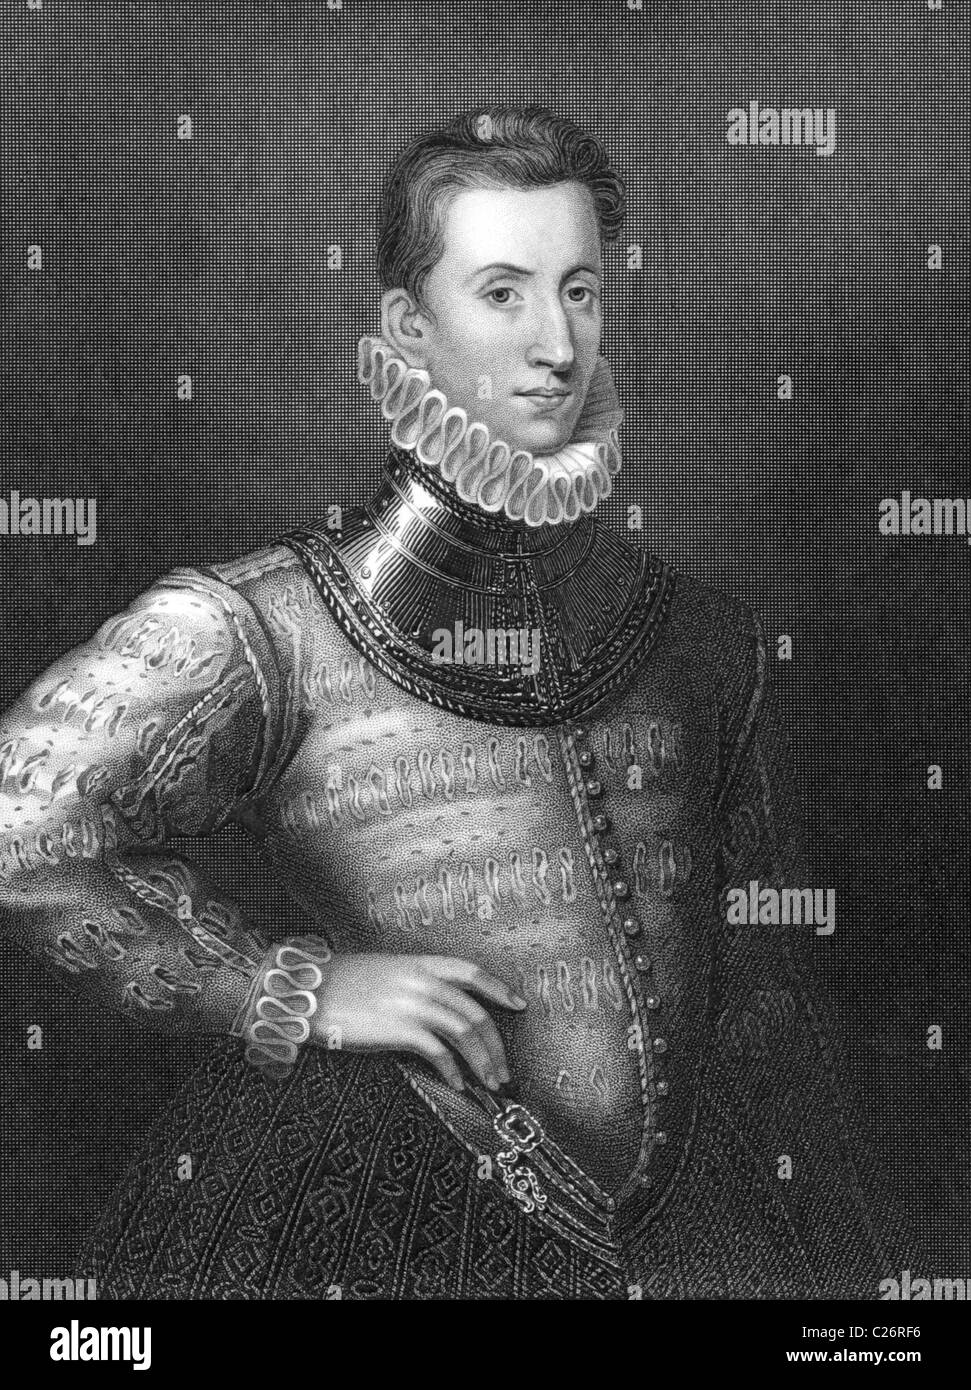 Sir Philip Sidney (1554-1586) on engraving from 1838. English poet, courtier and soldier. - Stock Image